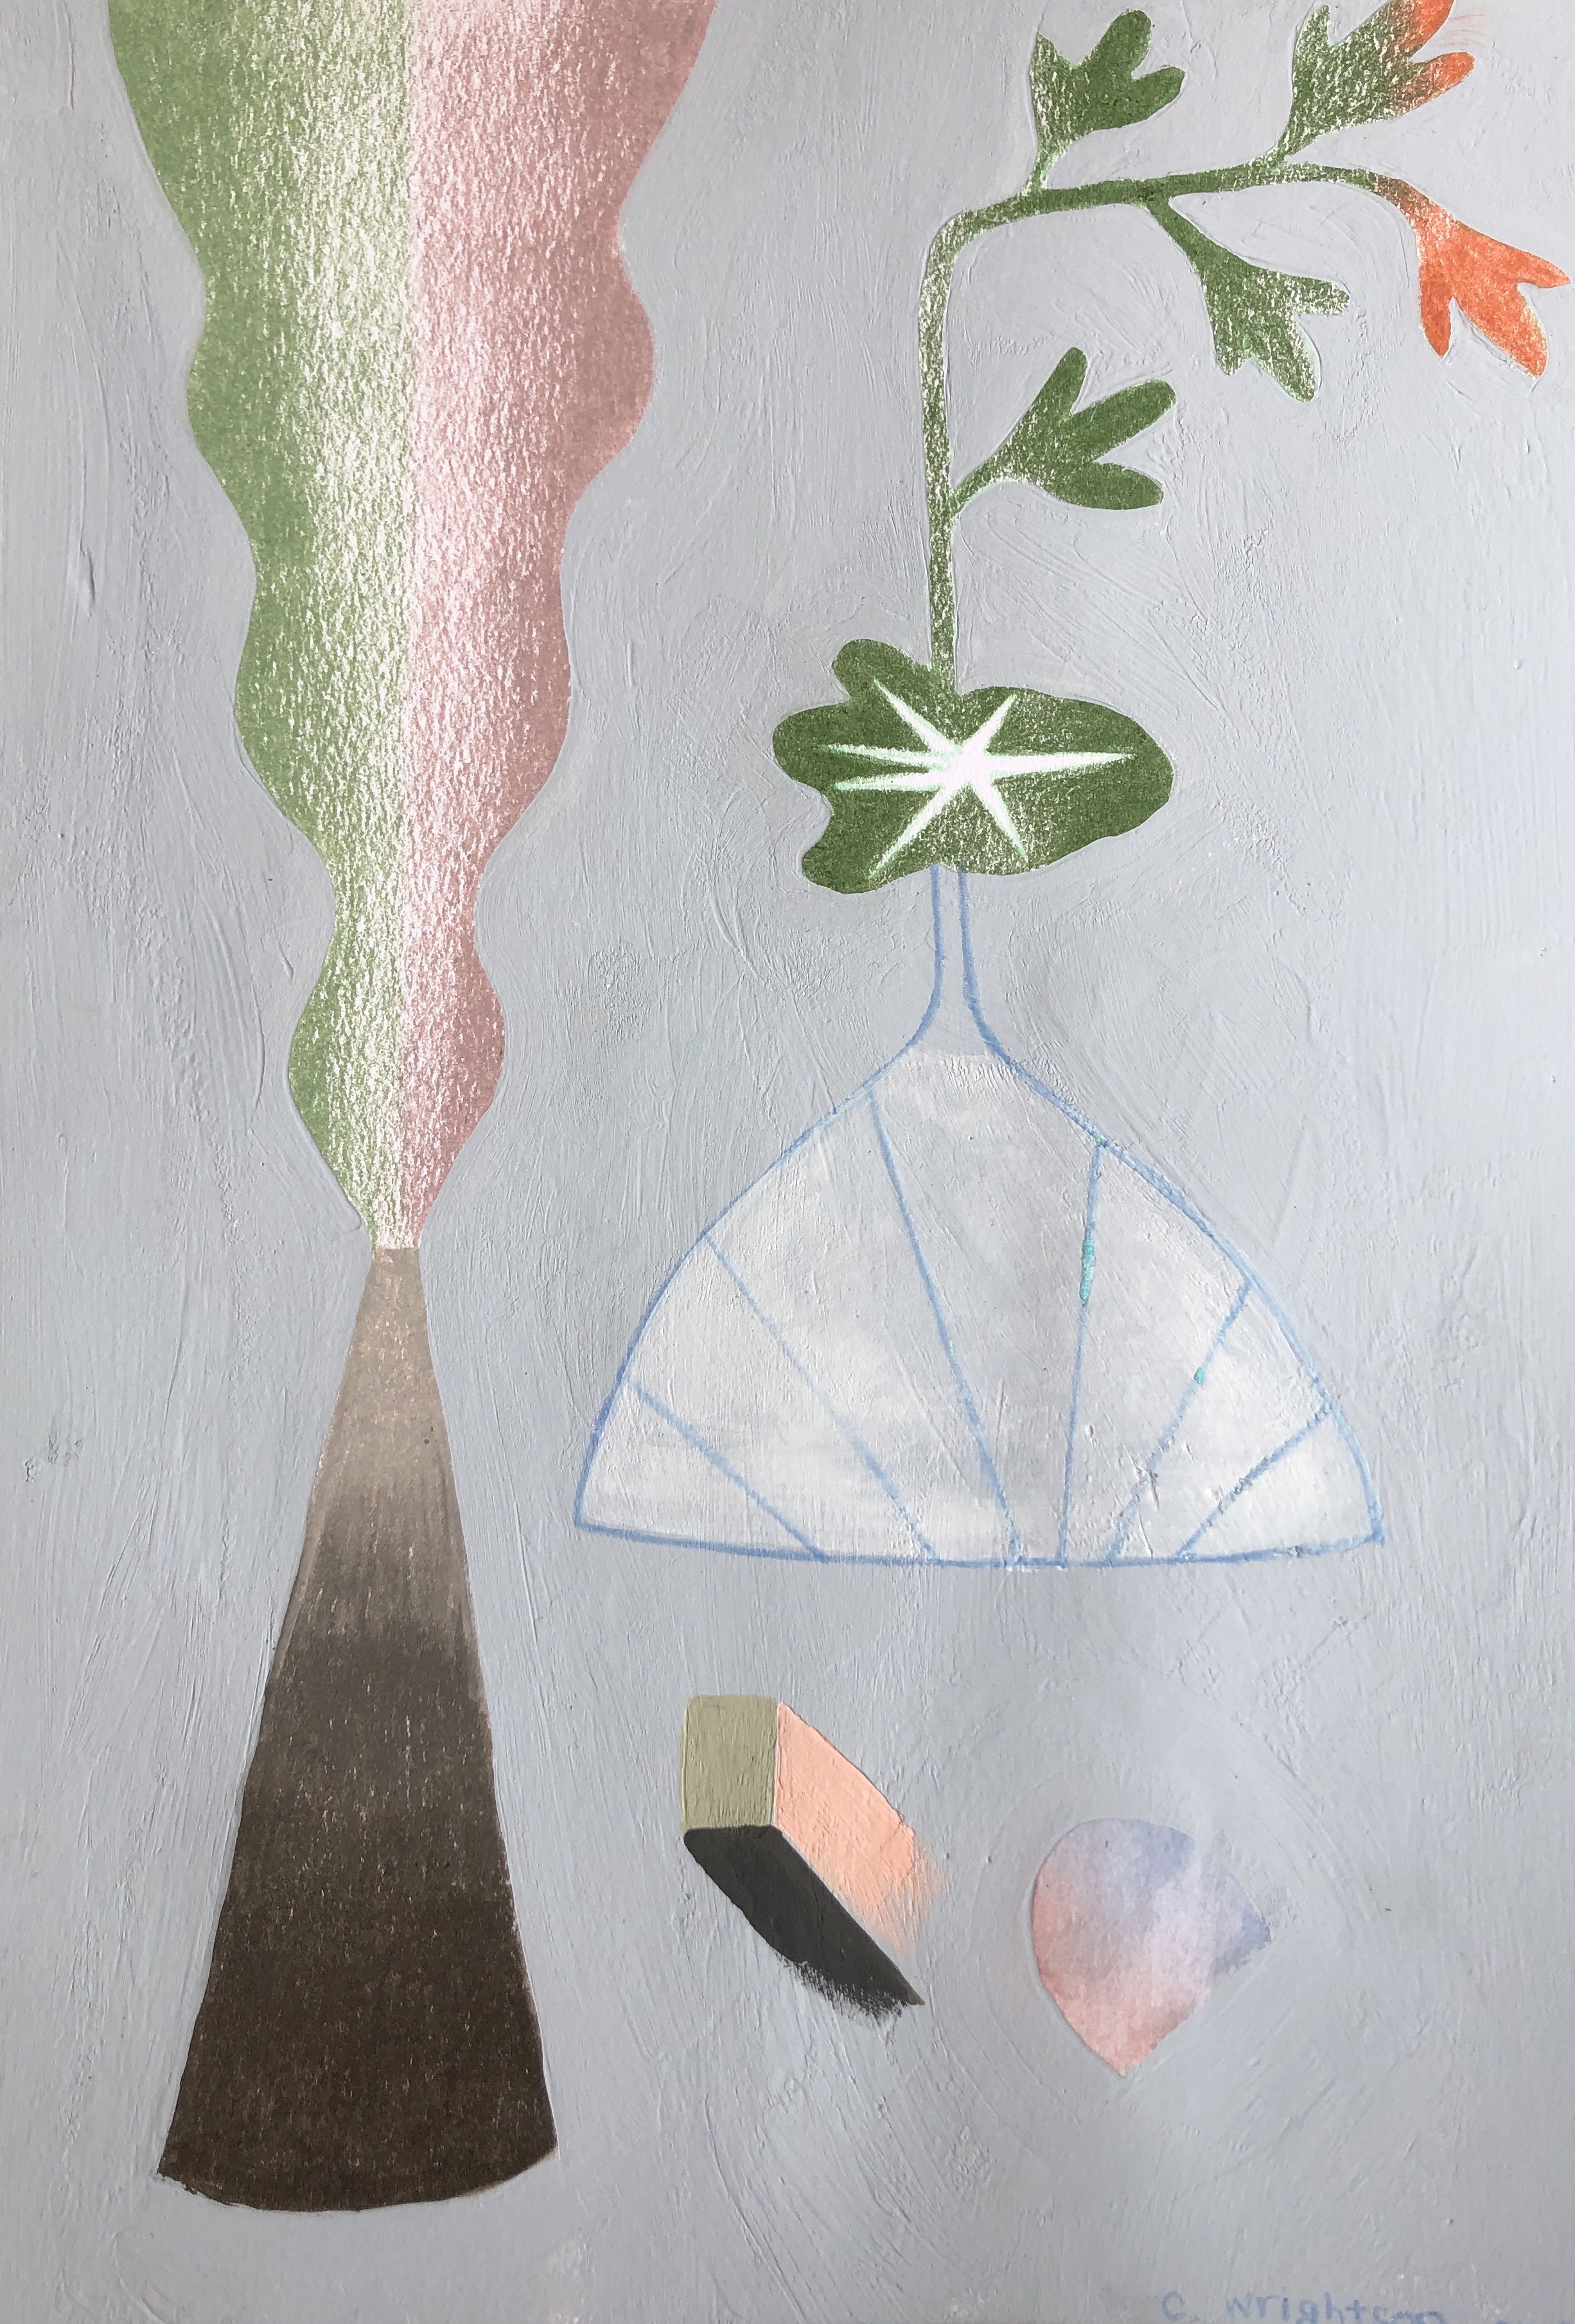 a future still life #2, 2019, gouache, watercolor, colored pencil and acrylic on paper